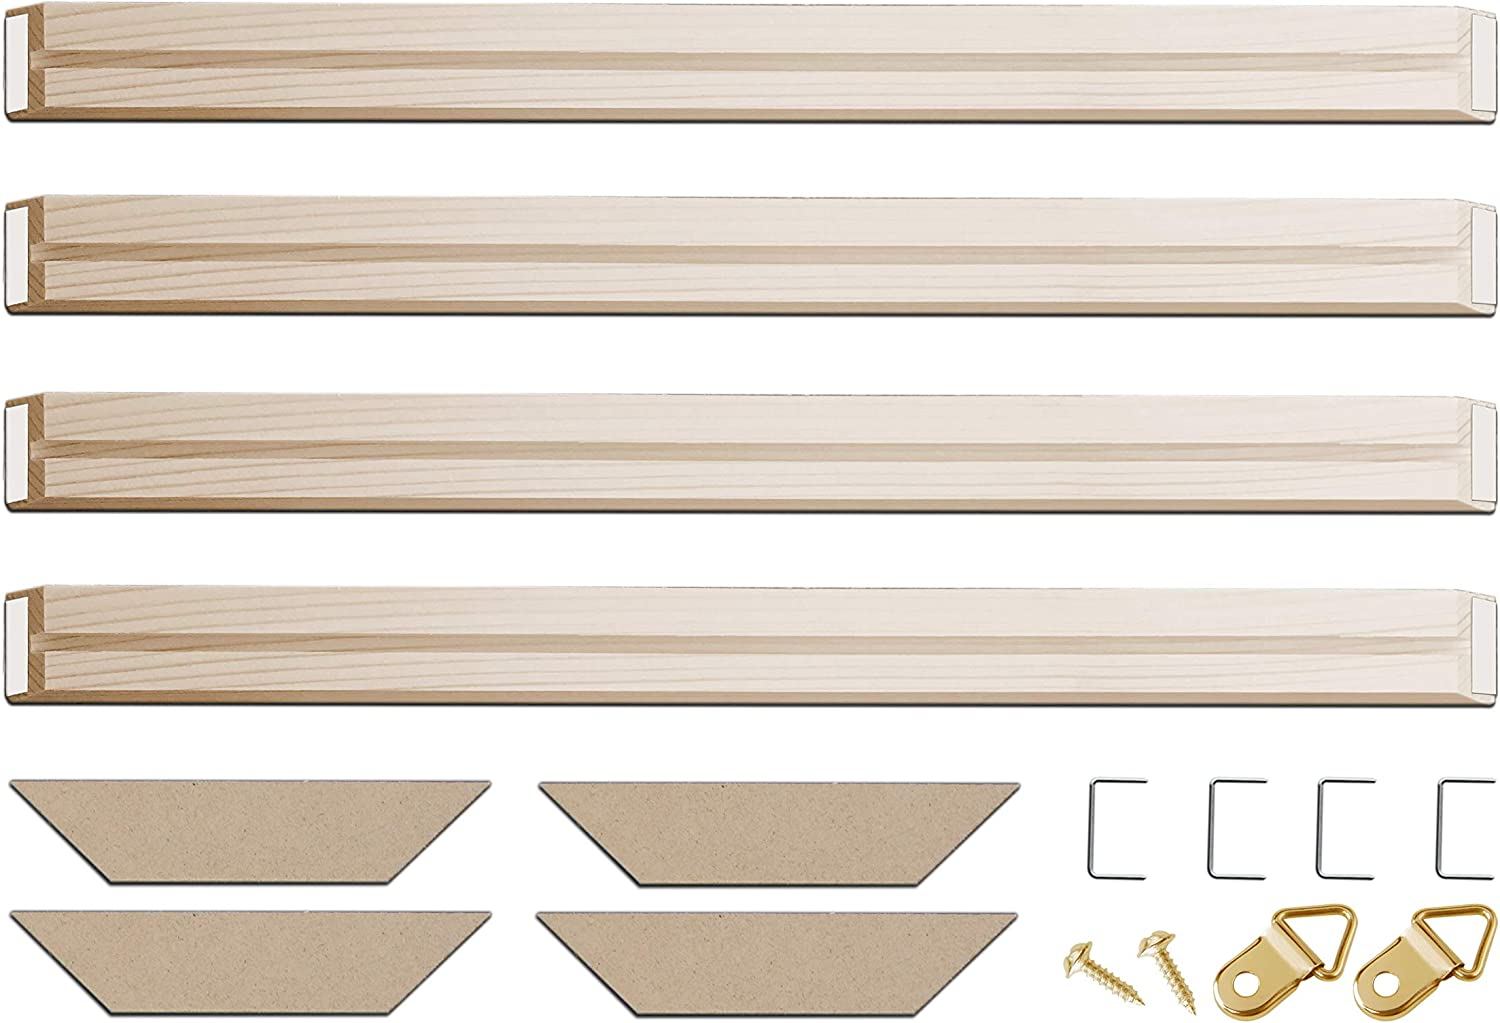 DIY Solid Wood Canvas Frame Kit 即日出荷 36 4 Painting for x Inch Oil 信用 PCs